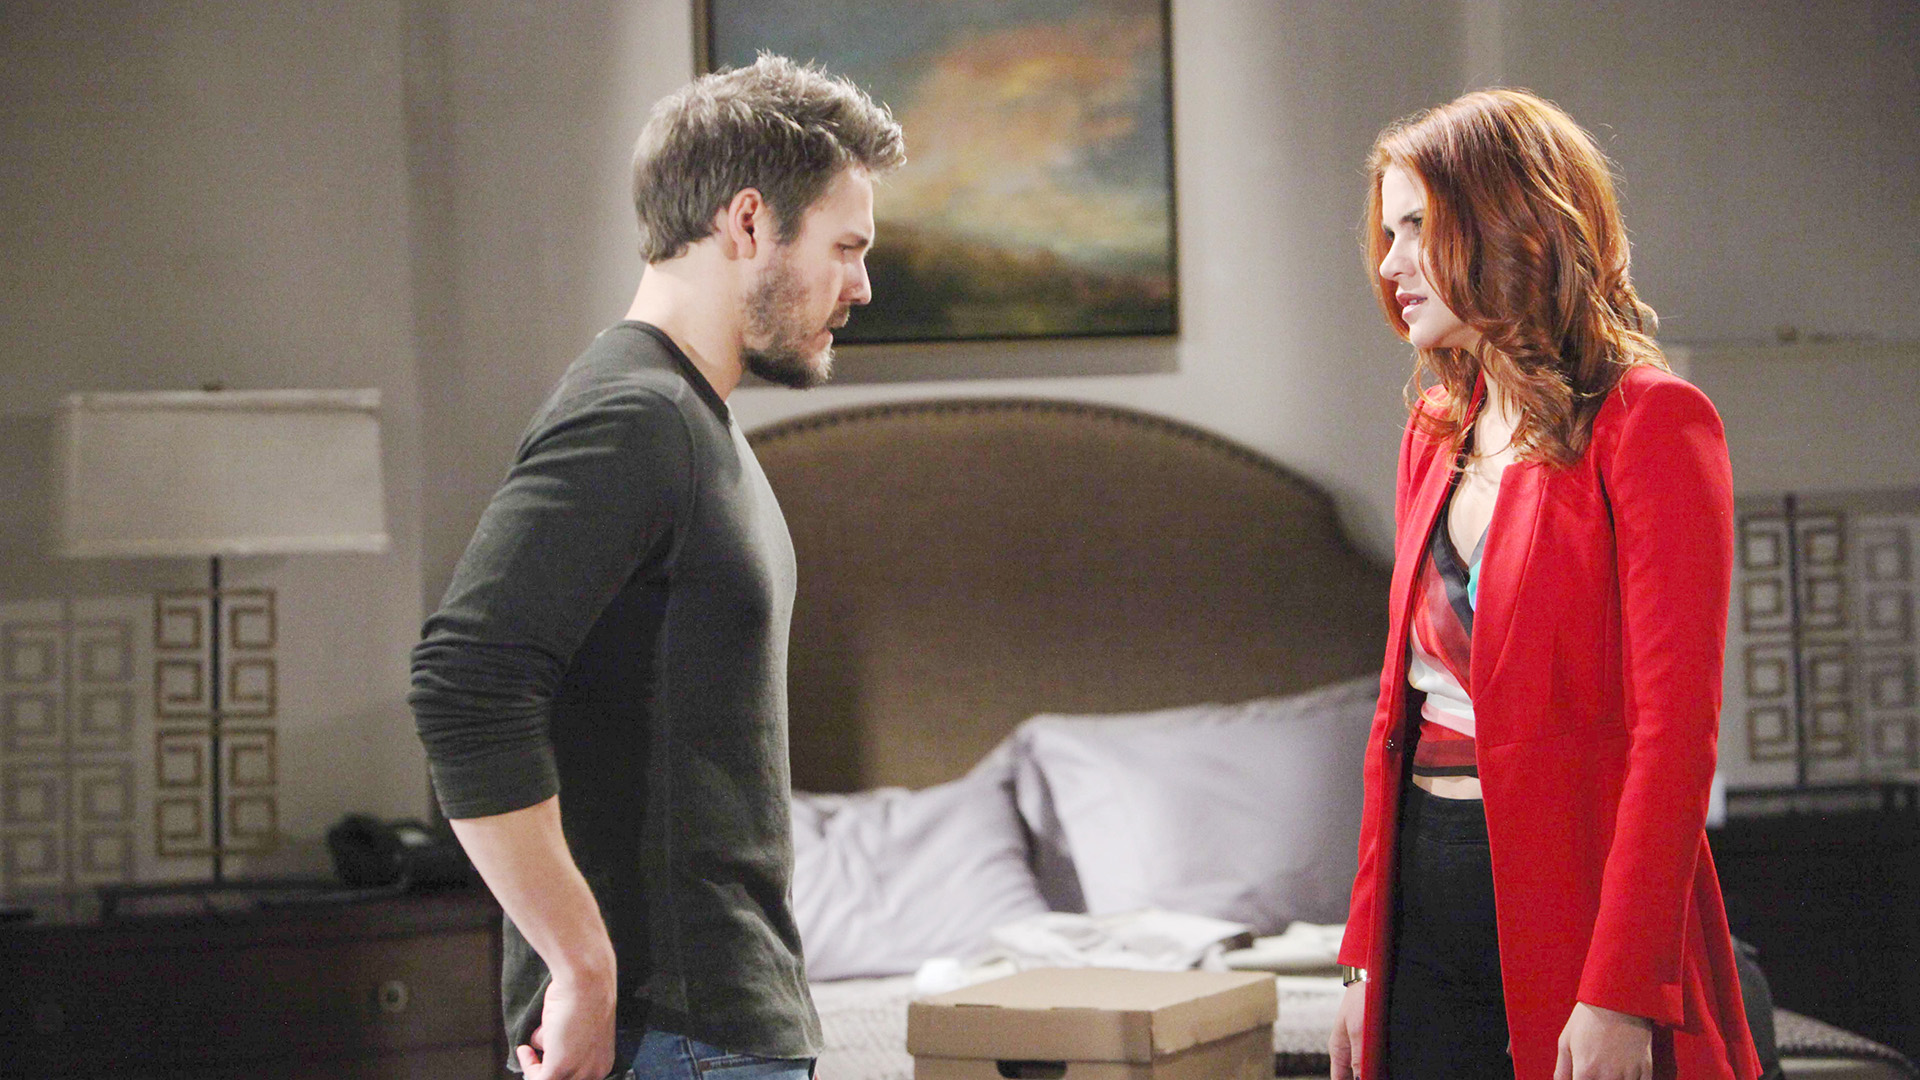 Concerned by Liam's sudden change in demeanor, Sally presses him for information. Sally refuses Liam's request to give him time alone and offers to be there for him in his time of need.